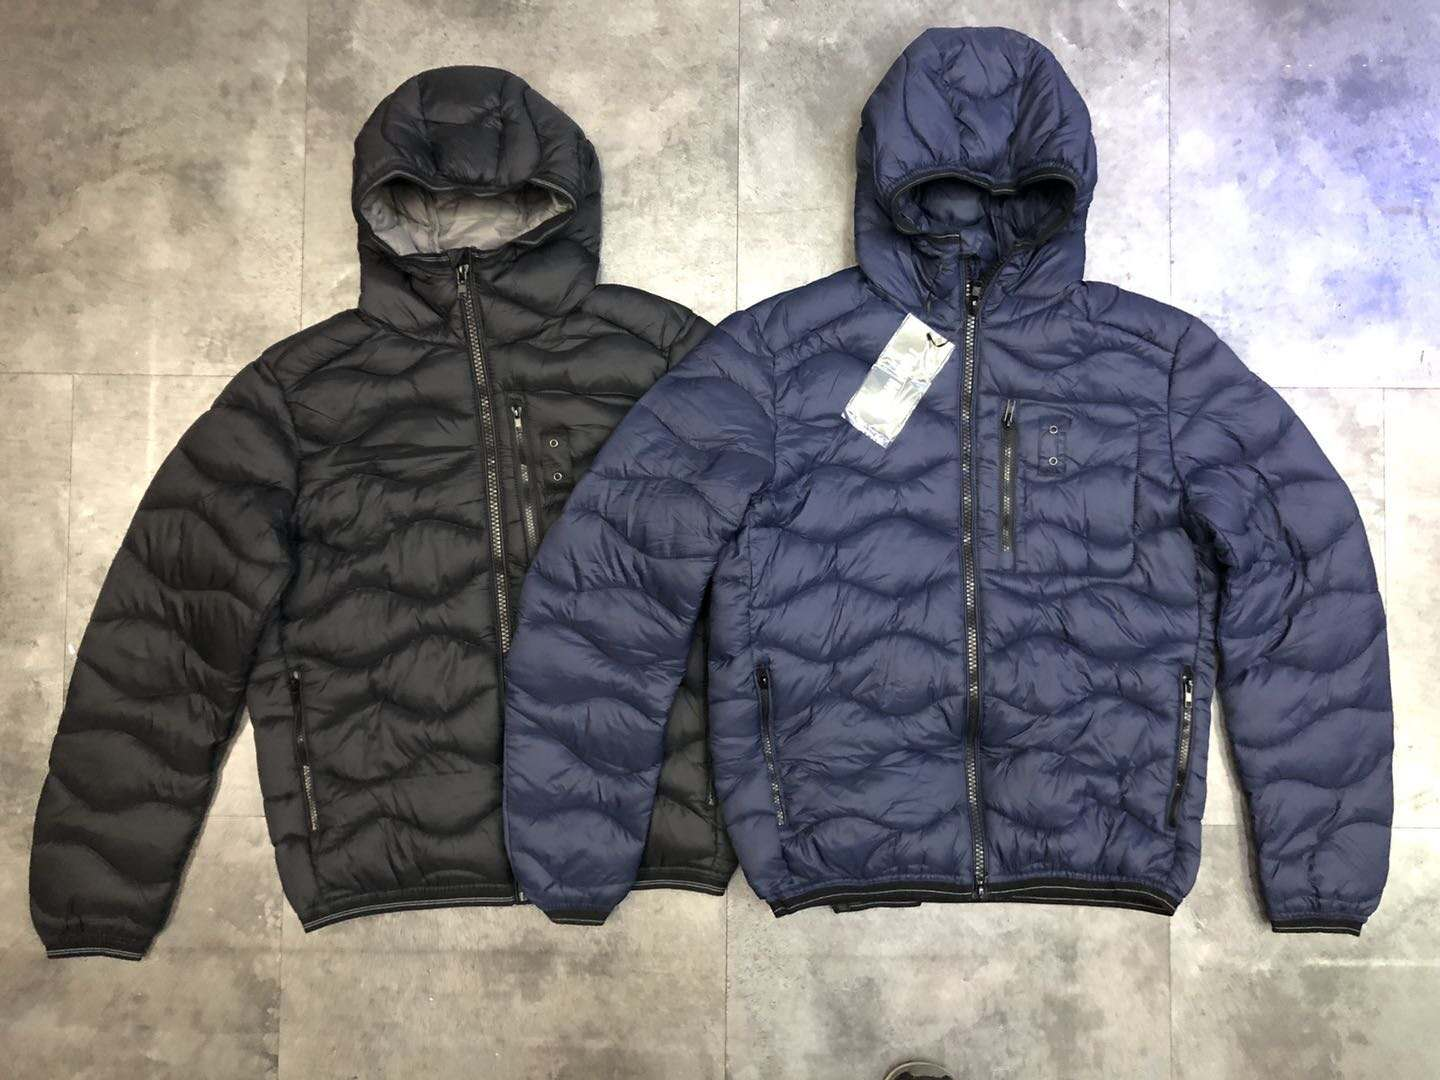 39118 - Men's Padded Jacket with Hood China